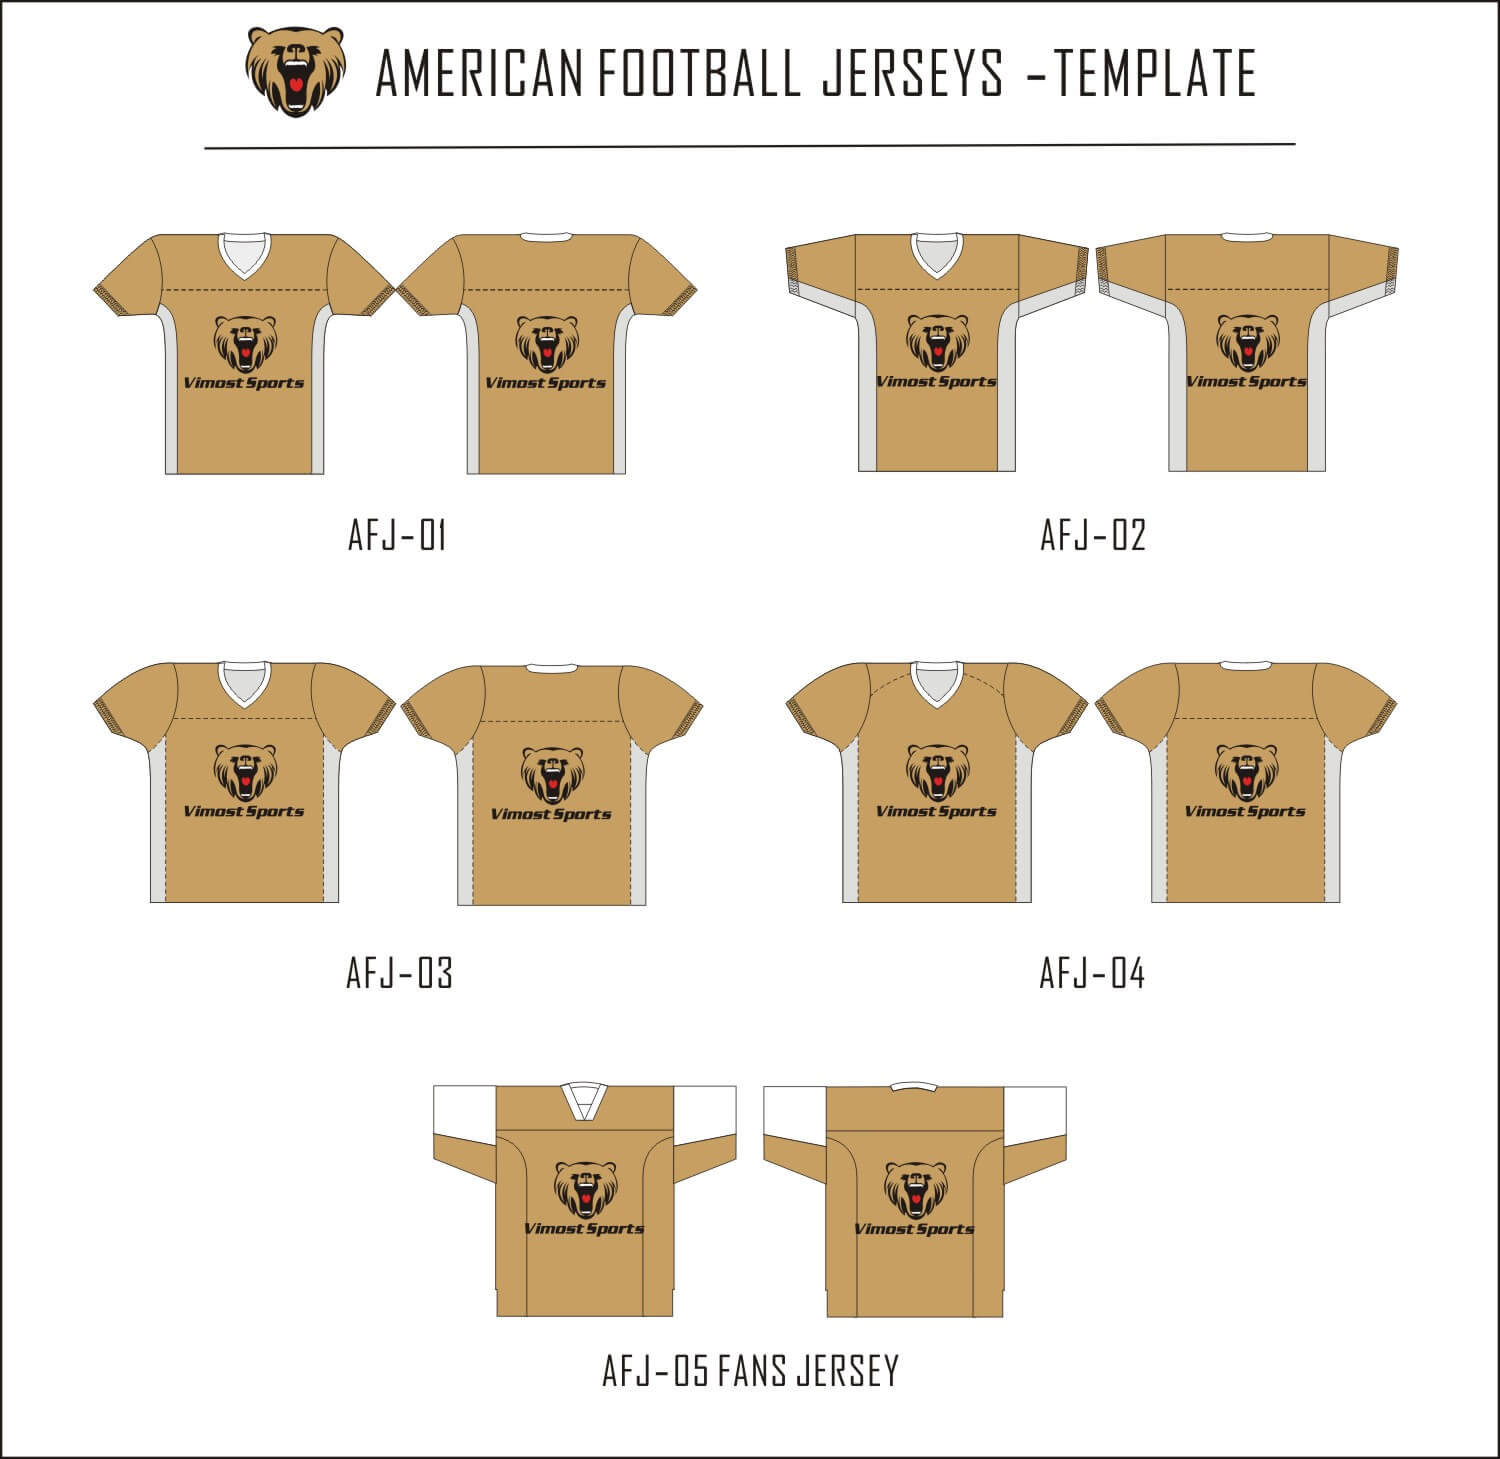 American football jersey-template